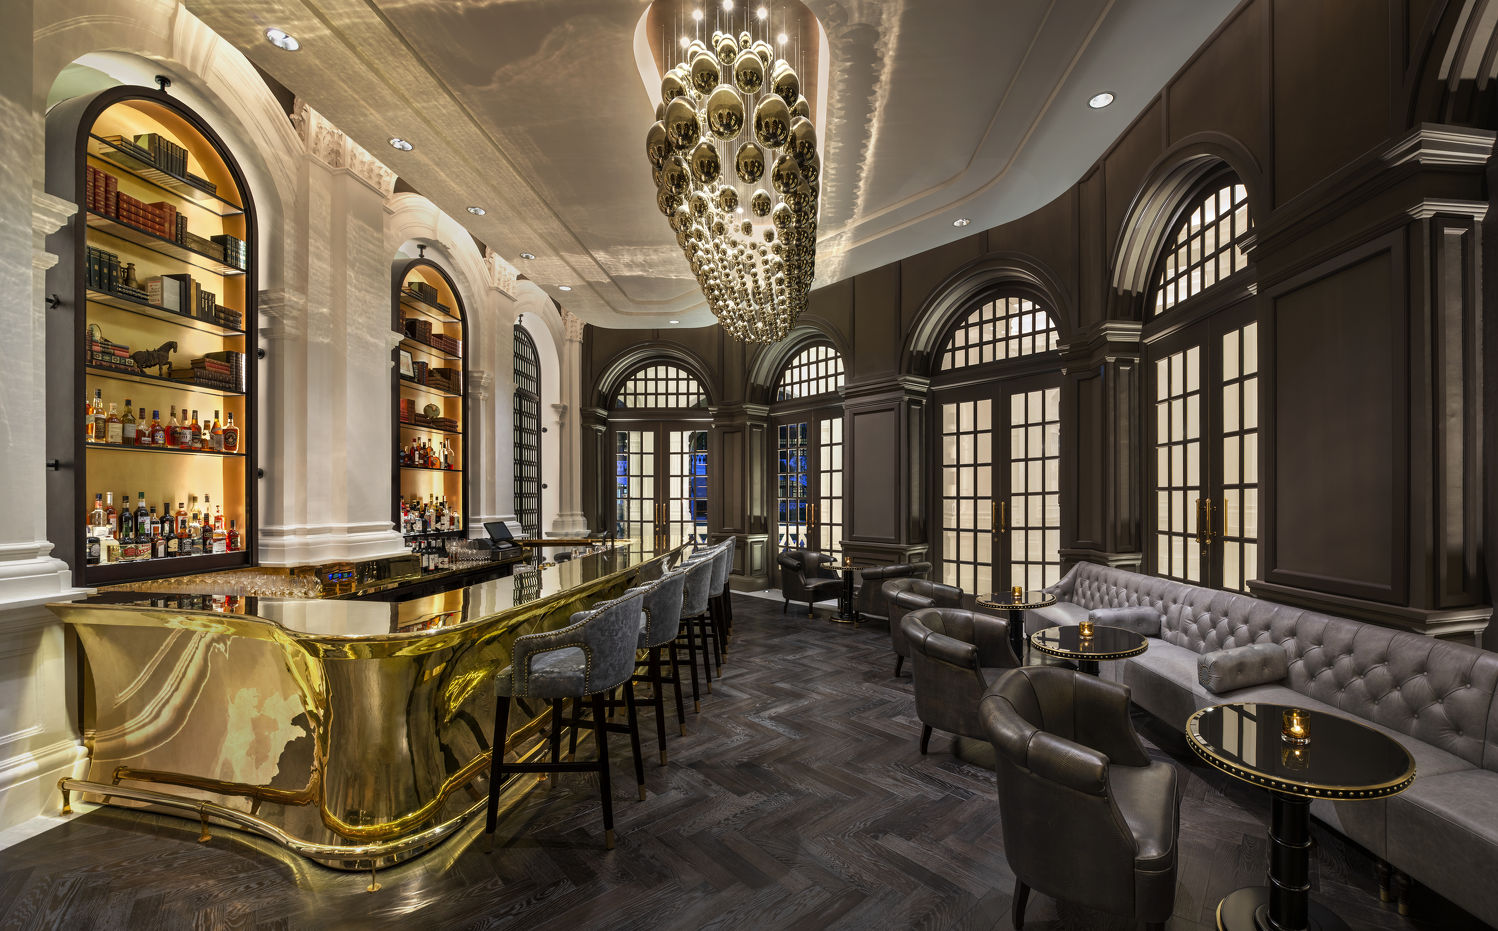 Writers Bar located at the Grand Lobby of Raffles Hotel Singapore - THE EDGE SINGAPORE